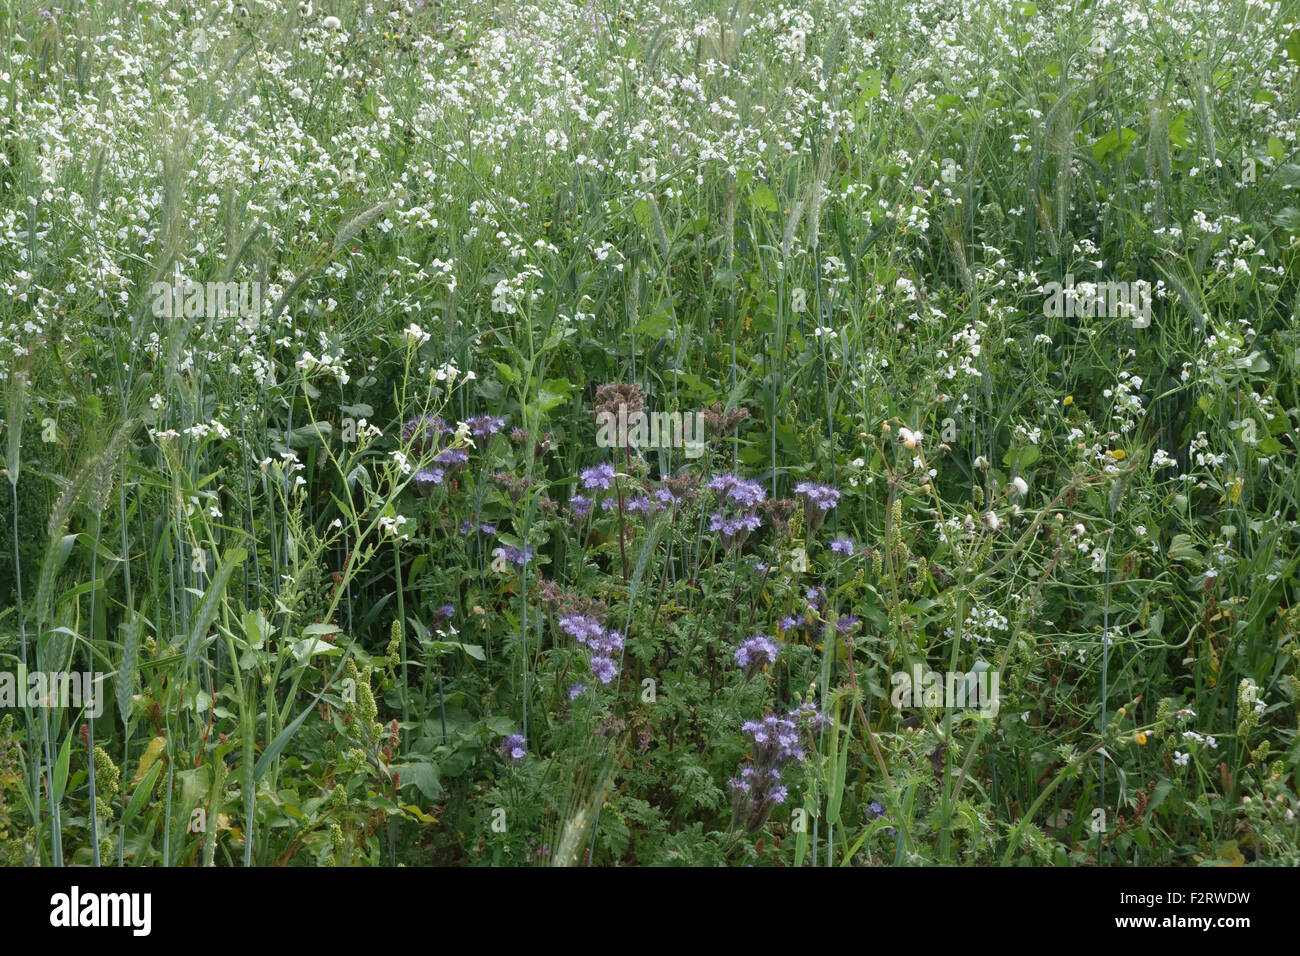 Wildflower margin with flowering plants to attract insects and wildlife alongside farm crops,  Berkshire, September - Stock Image